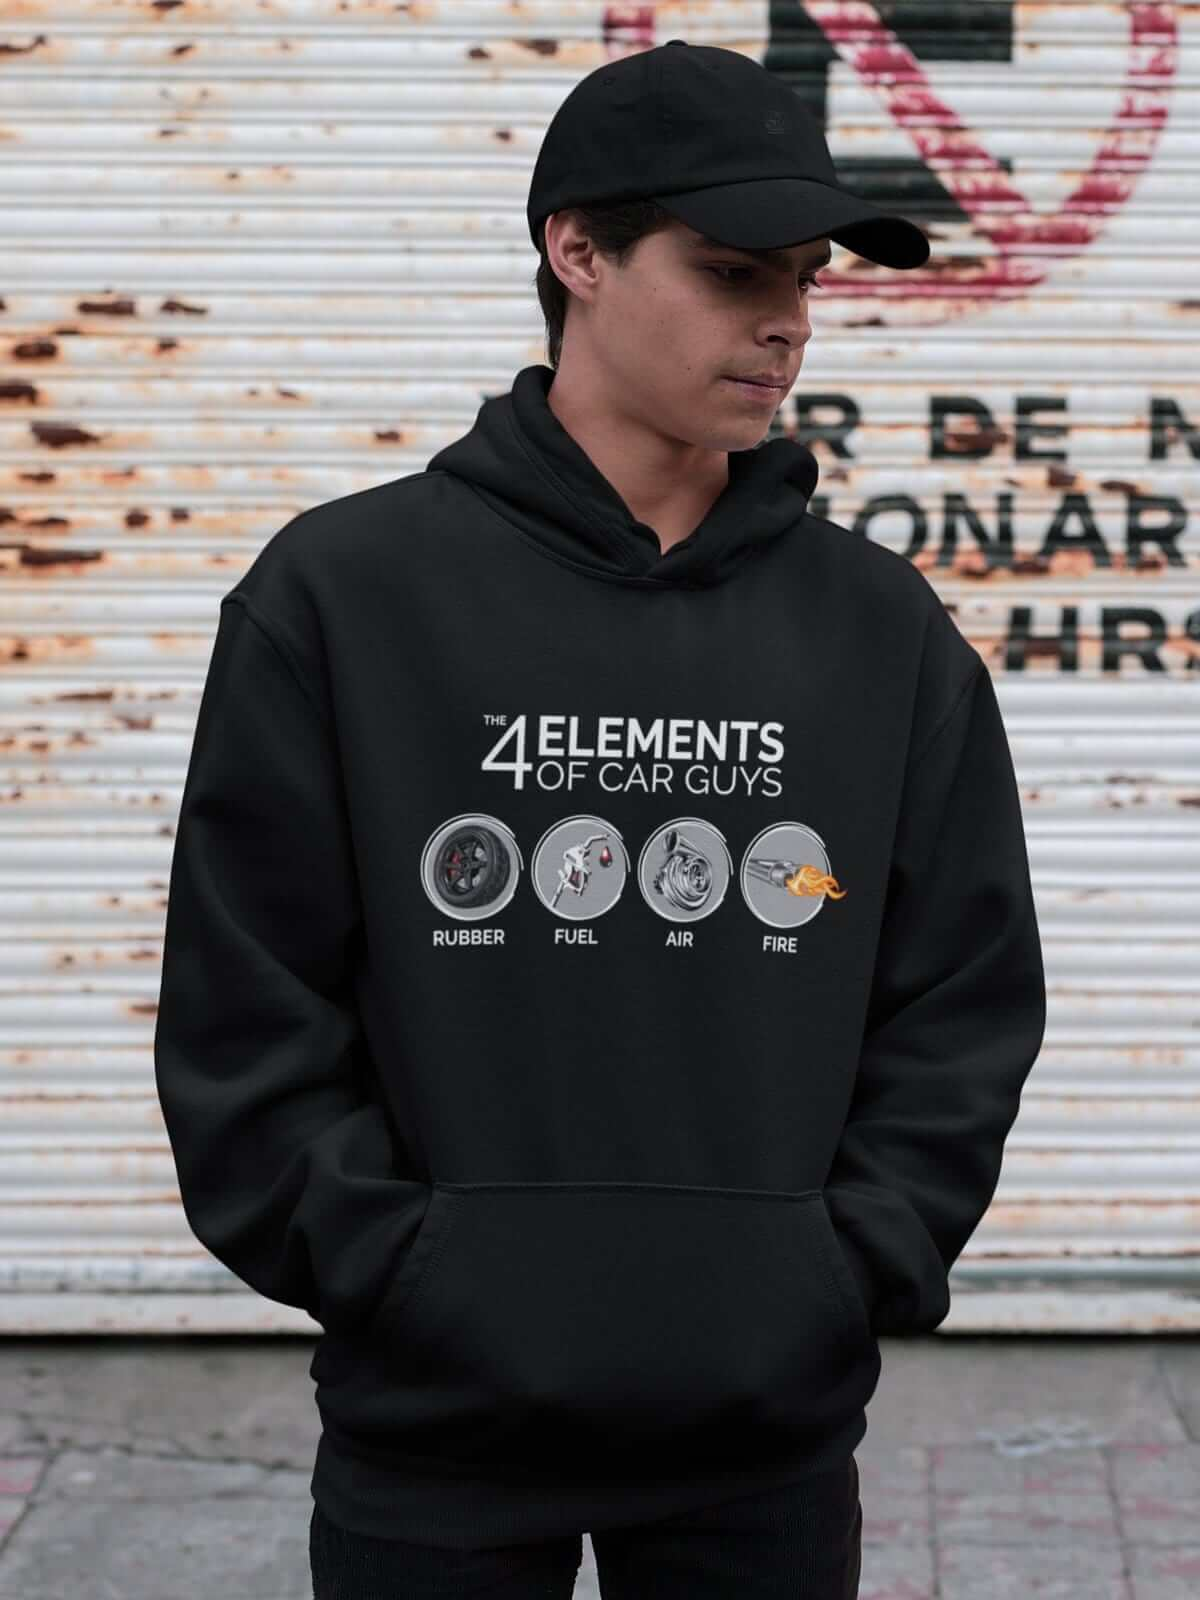 "Funny ""the 4 elements of car guys"" black car hoodie, JDM sweatshirt, car guy gift, car lover, car fan, car enthusiast, petrolhead, JDM lover, boyfriend gift idea."